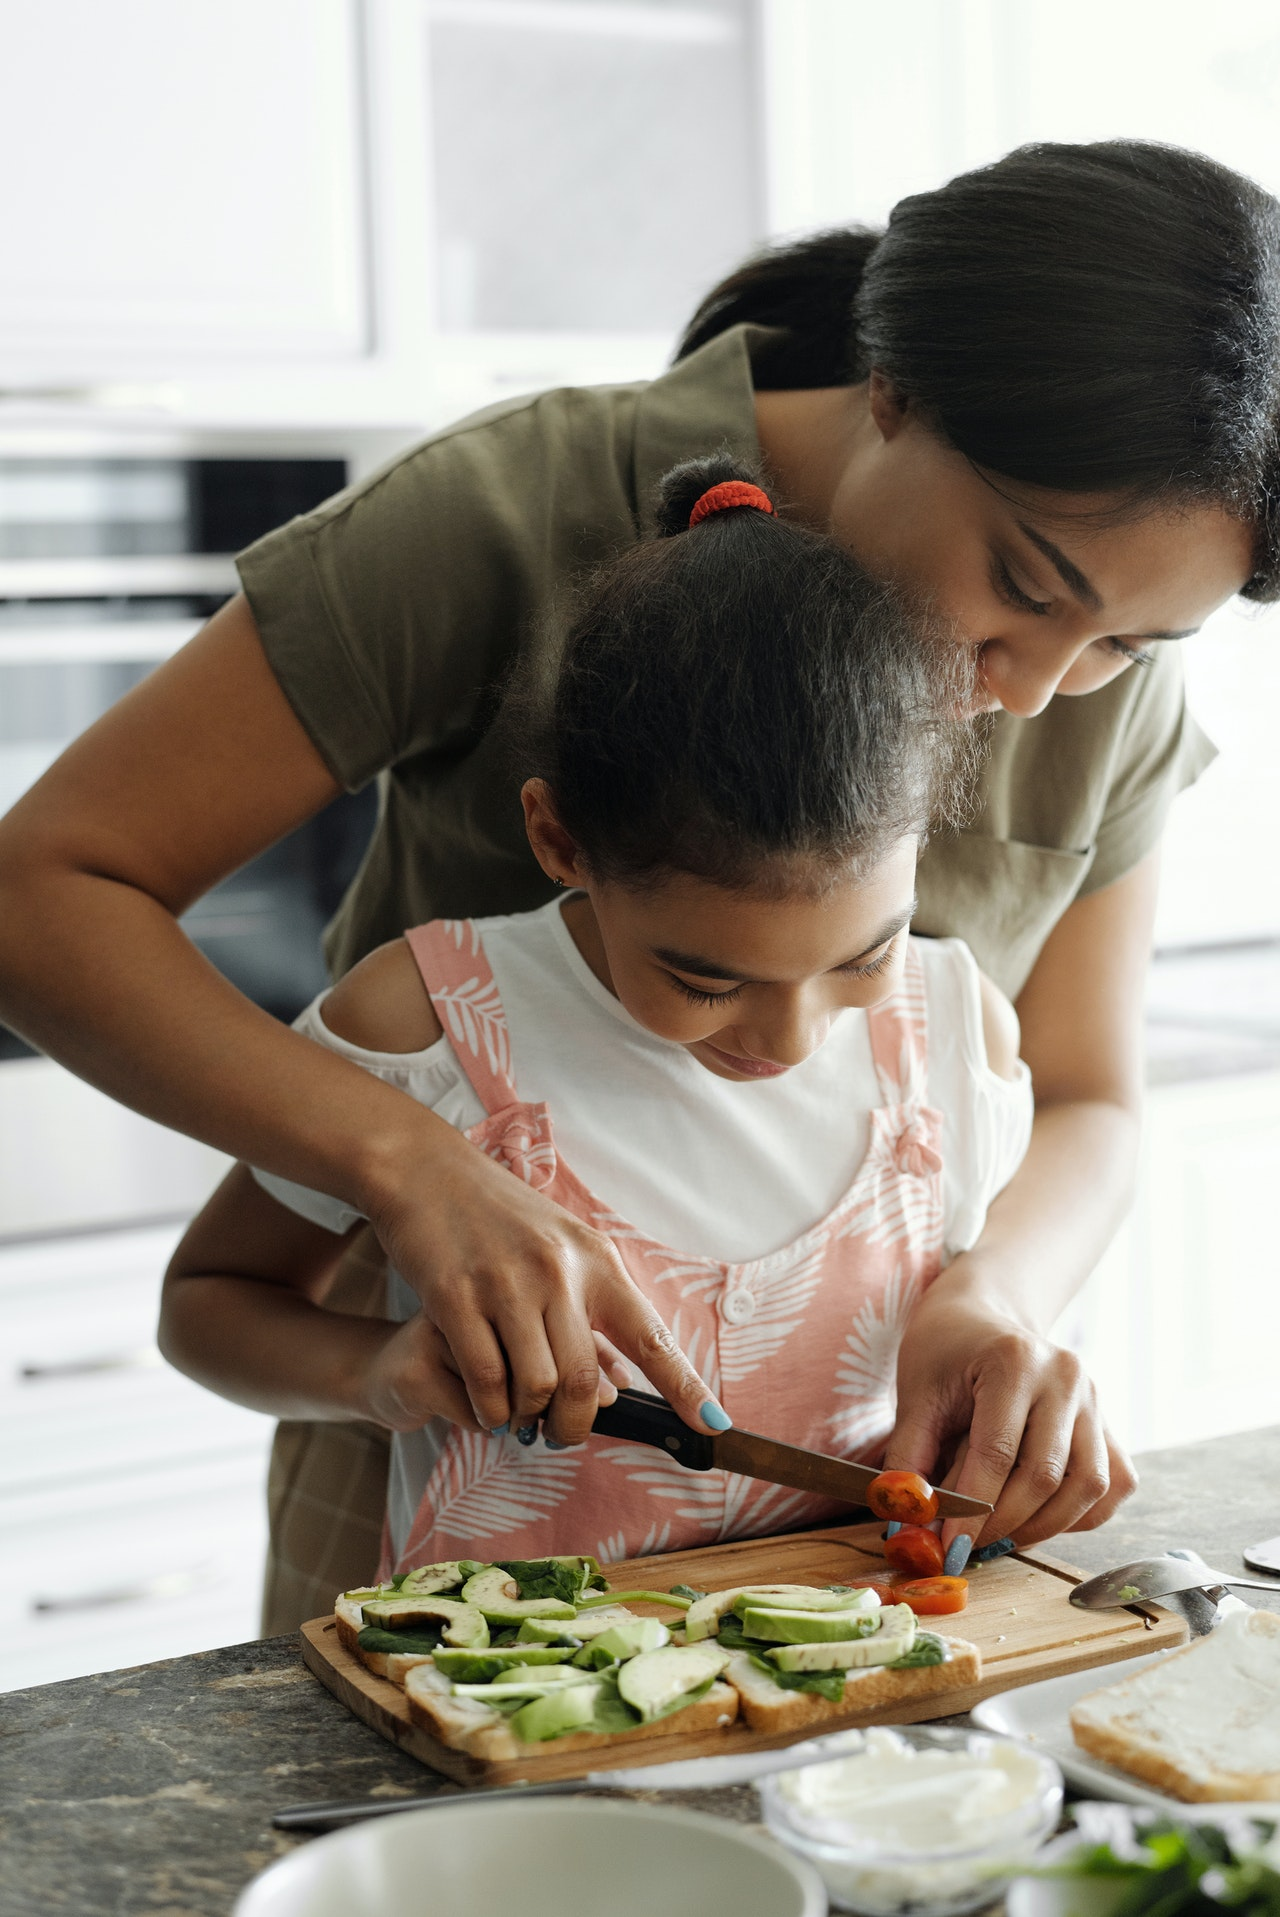 Healthy Eating Tips to Improve Your Family's Diet